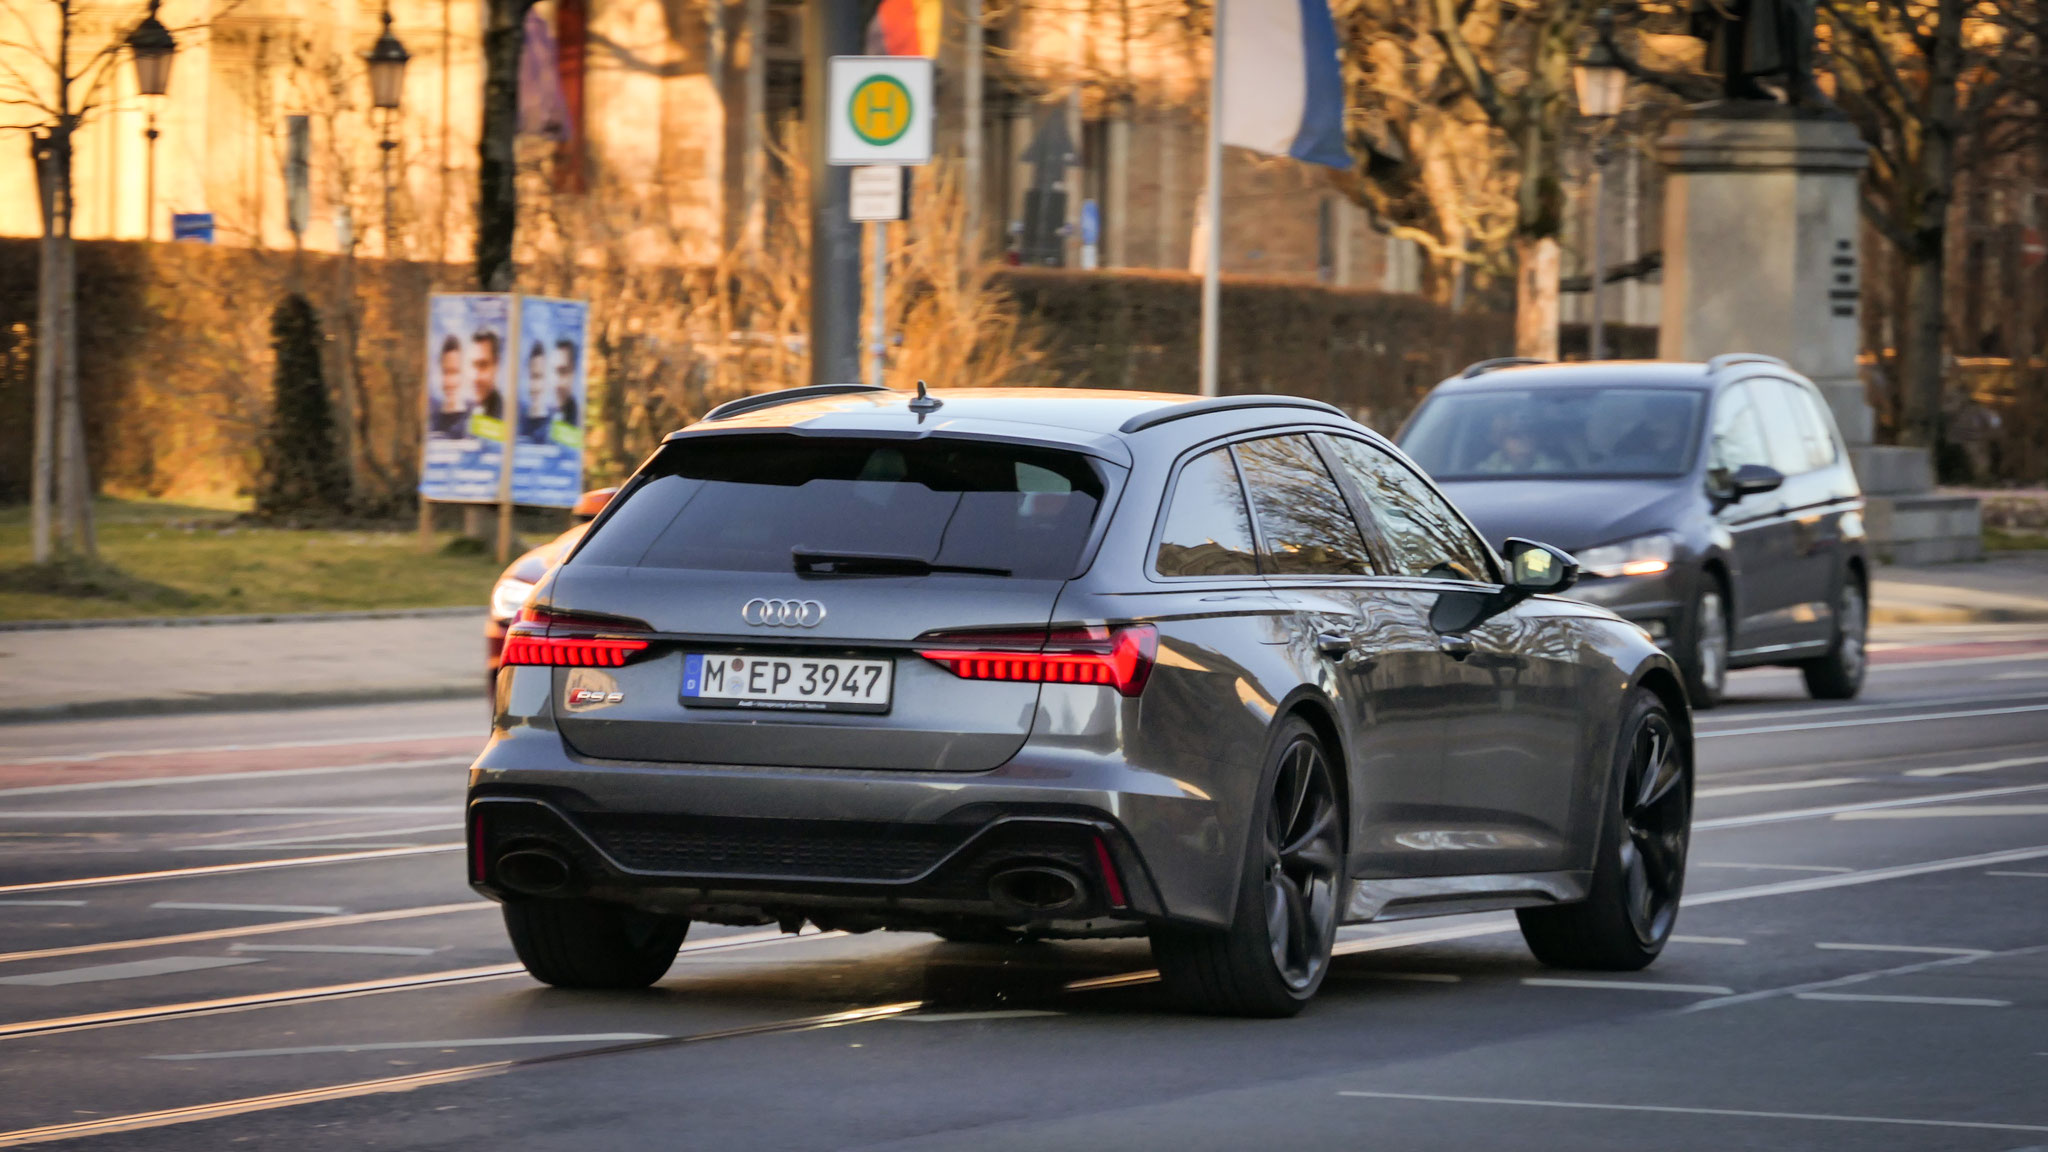 Audi RS6 - M-EP-3947